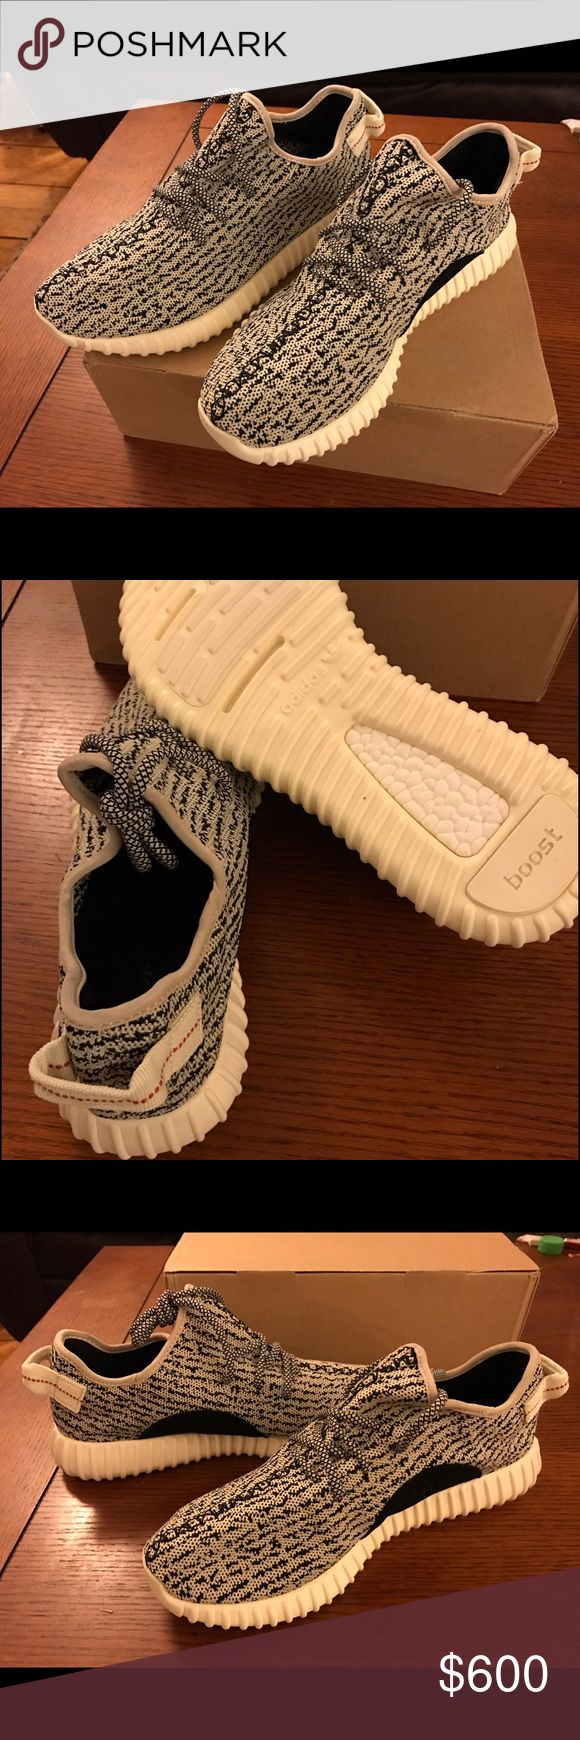 "Adidas Yeezy Boost 350 ""Turtle Dove"" DS Men's 11.5 Adidas Yeezy Boost 350 ""Turtle Dove"" by Kanye West sz 11.5 US mens, Deadstock (never worn) condition, Receipt, OG box $600 Or Best Offer  Brand new in box Yeezy boosts. OG box, receipt, Deadstock. I have"